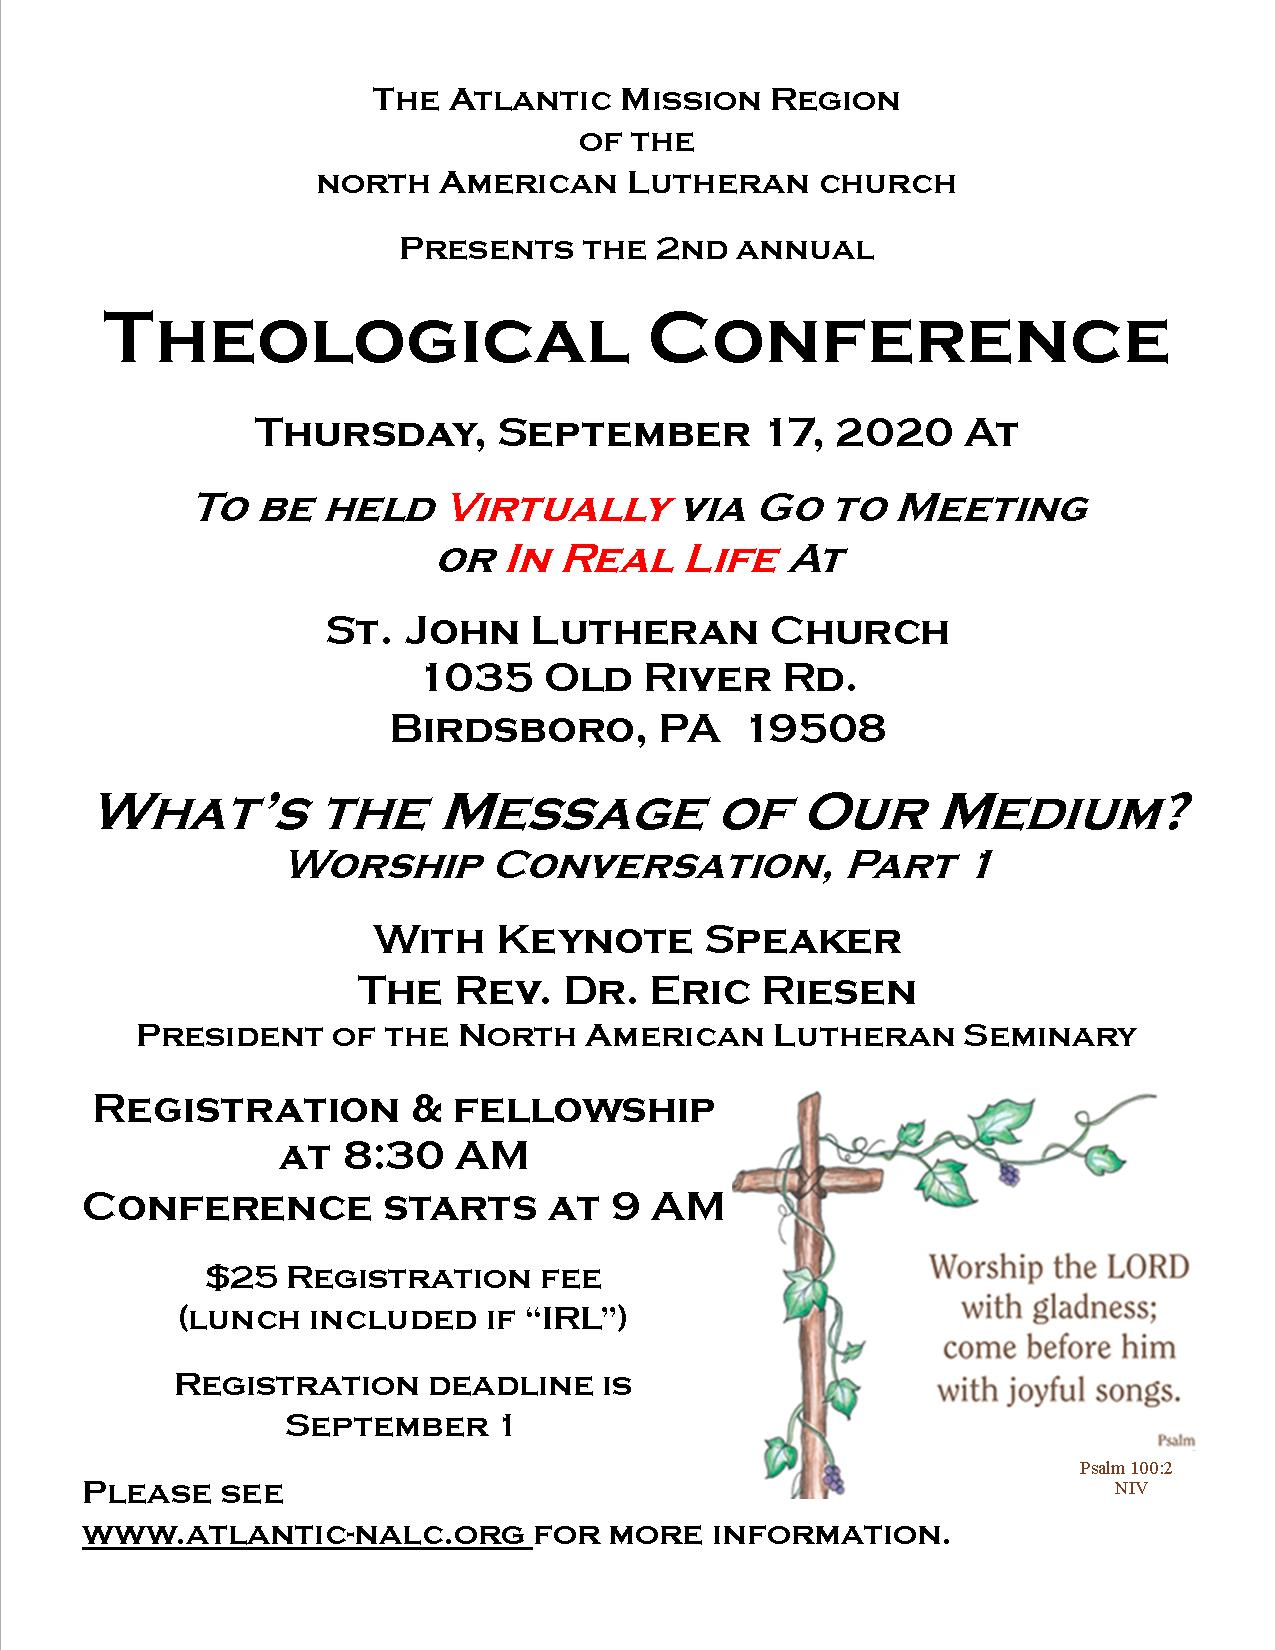 Theological Conference flyer